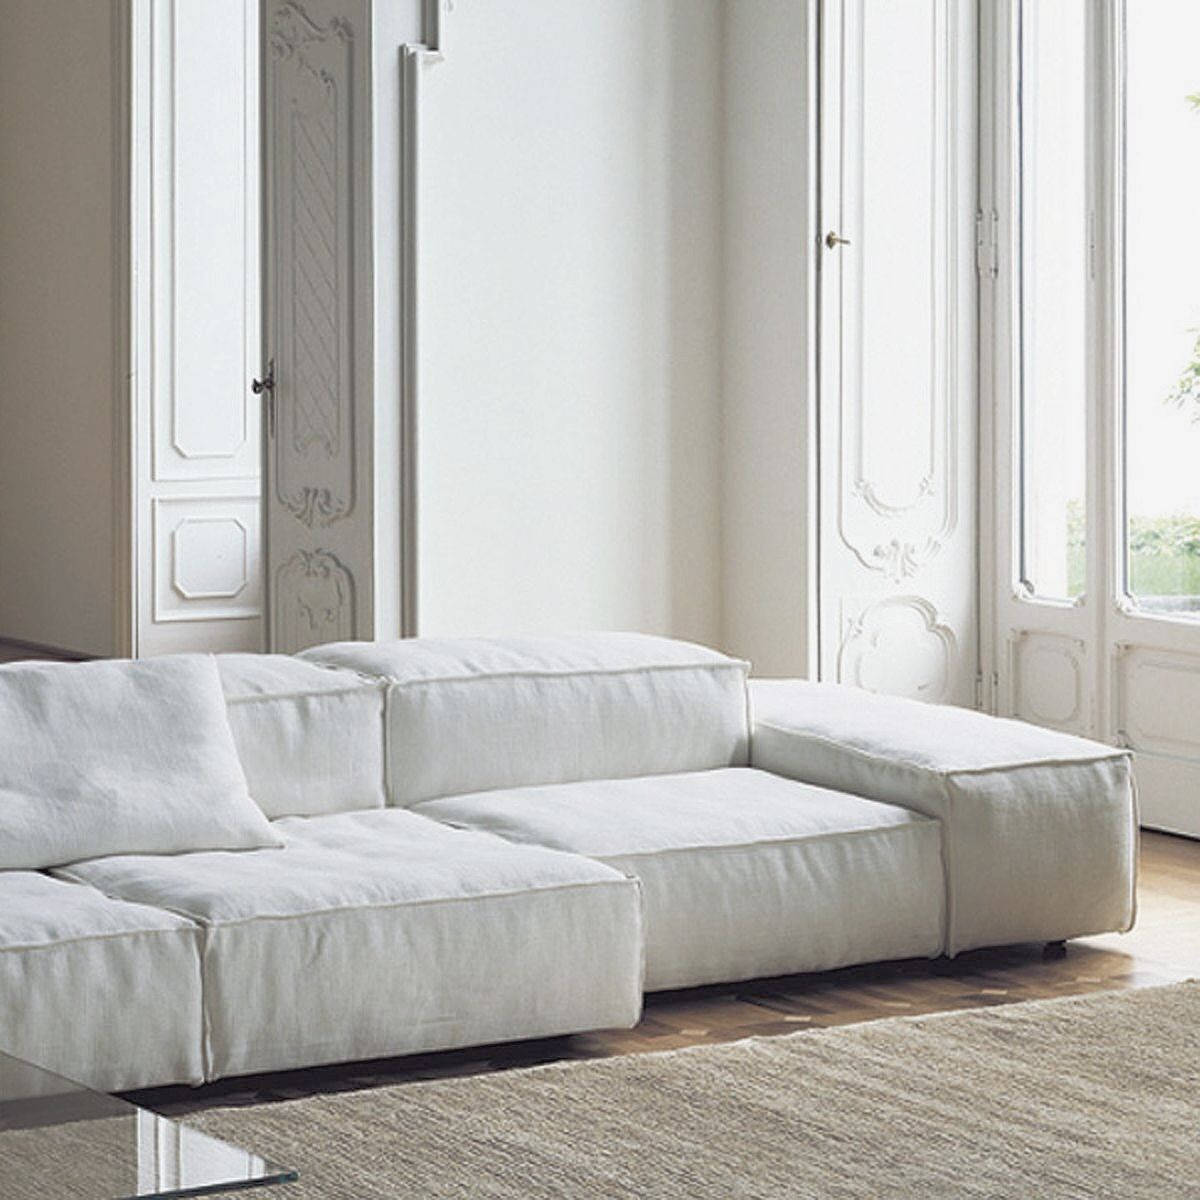 Modular Furniture Sofa: Extra Soft Modular Sofa By Living Divani